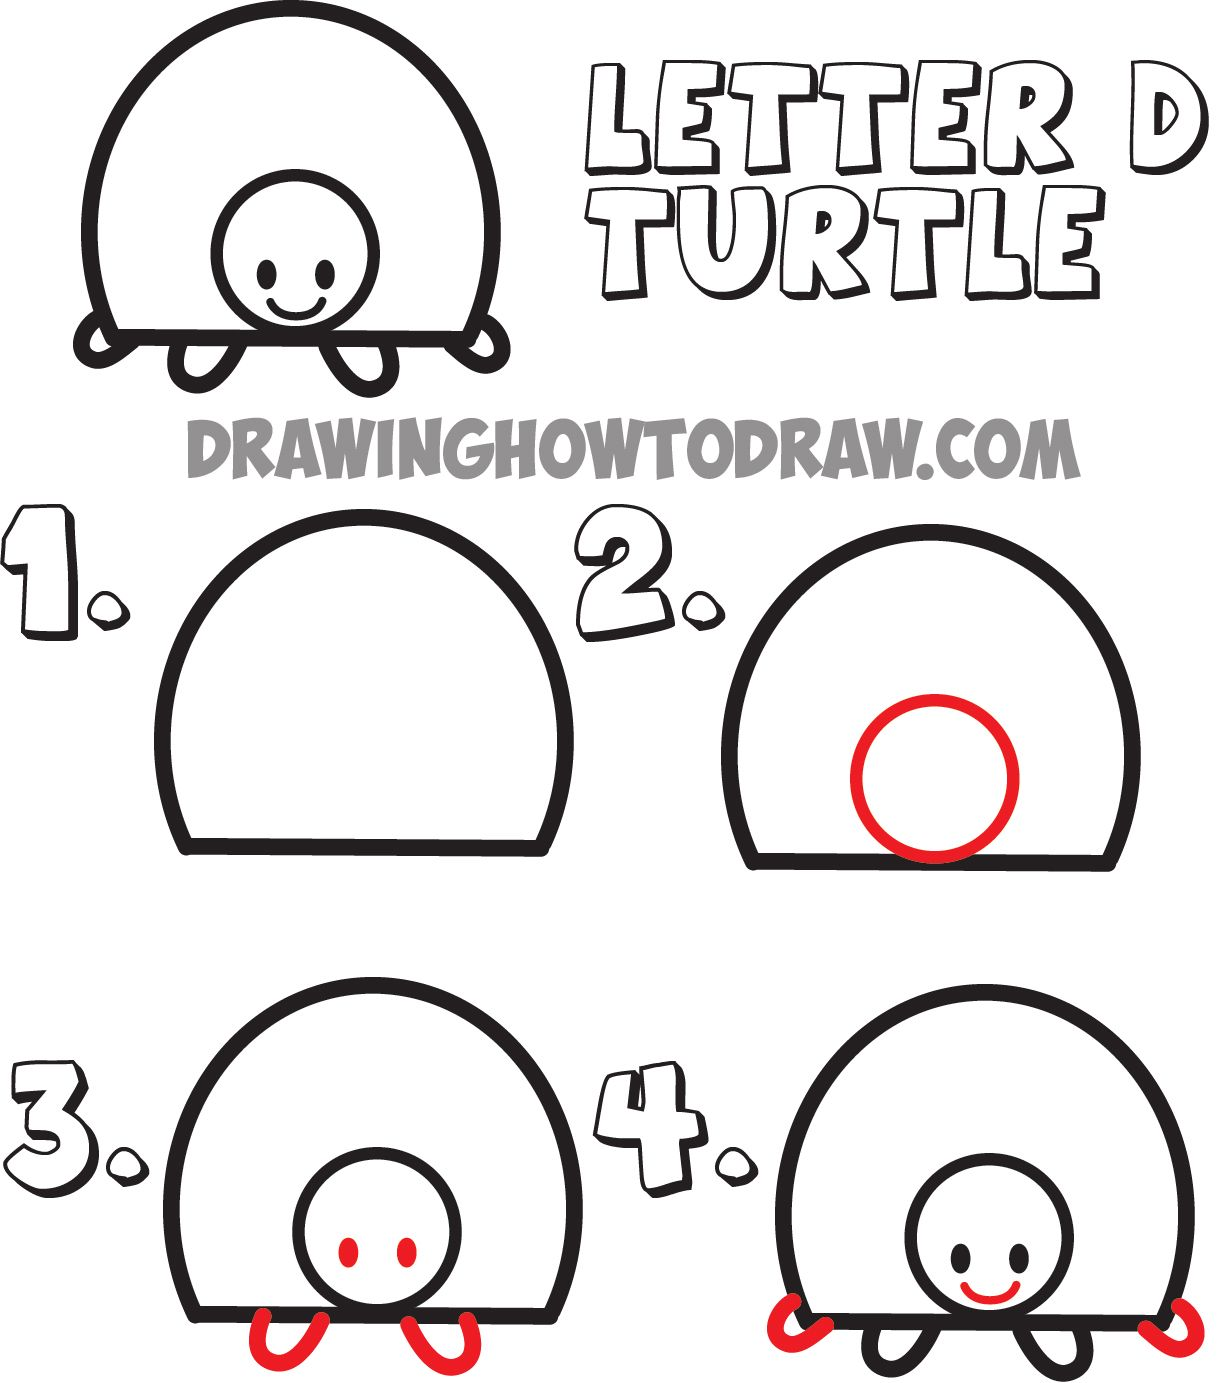 1217x1383 How To Draw Cartoon Turtles From The Uppercase Letter D Shape